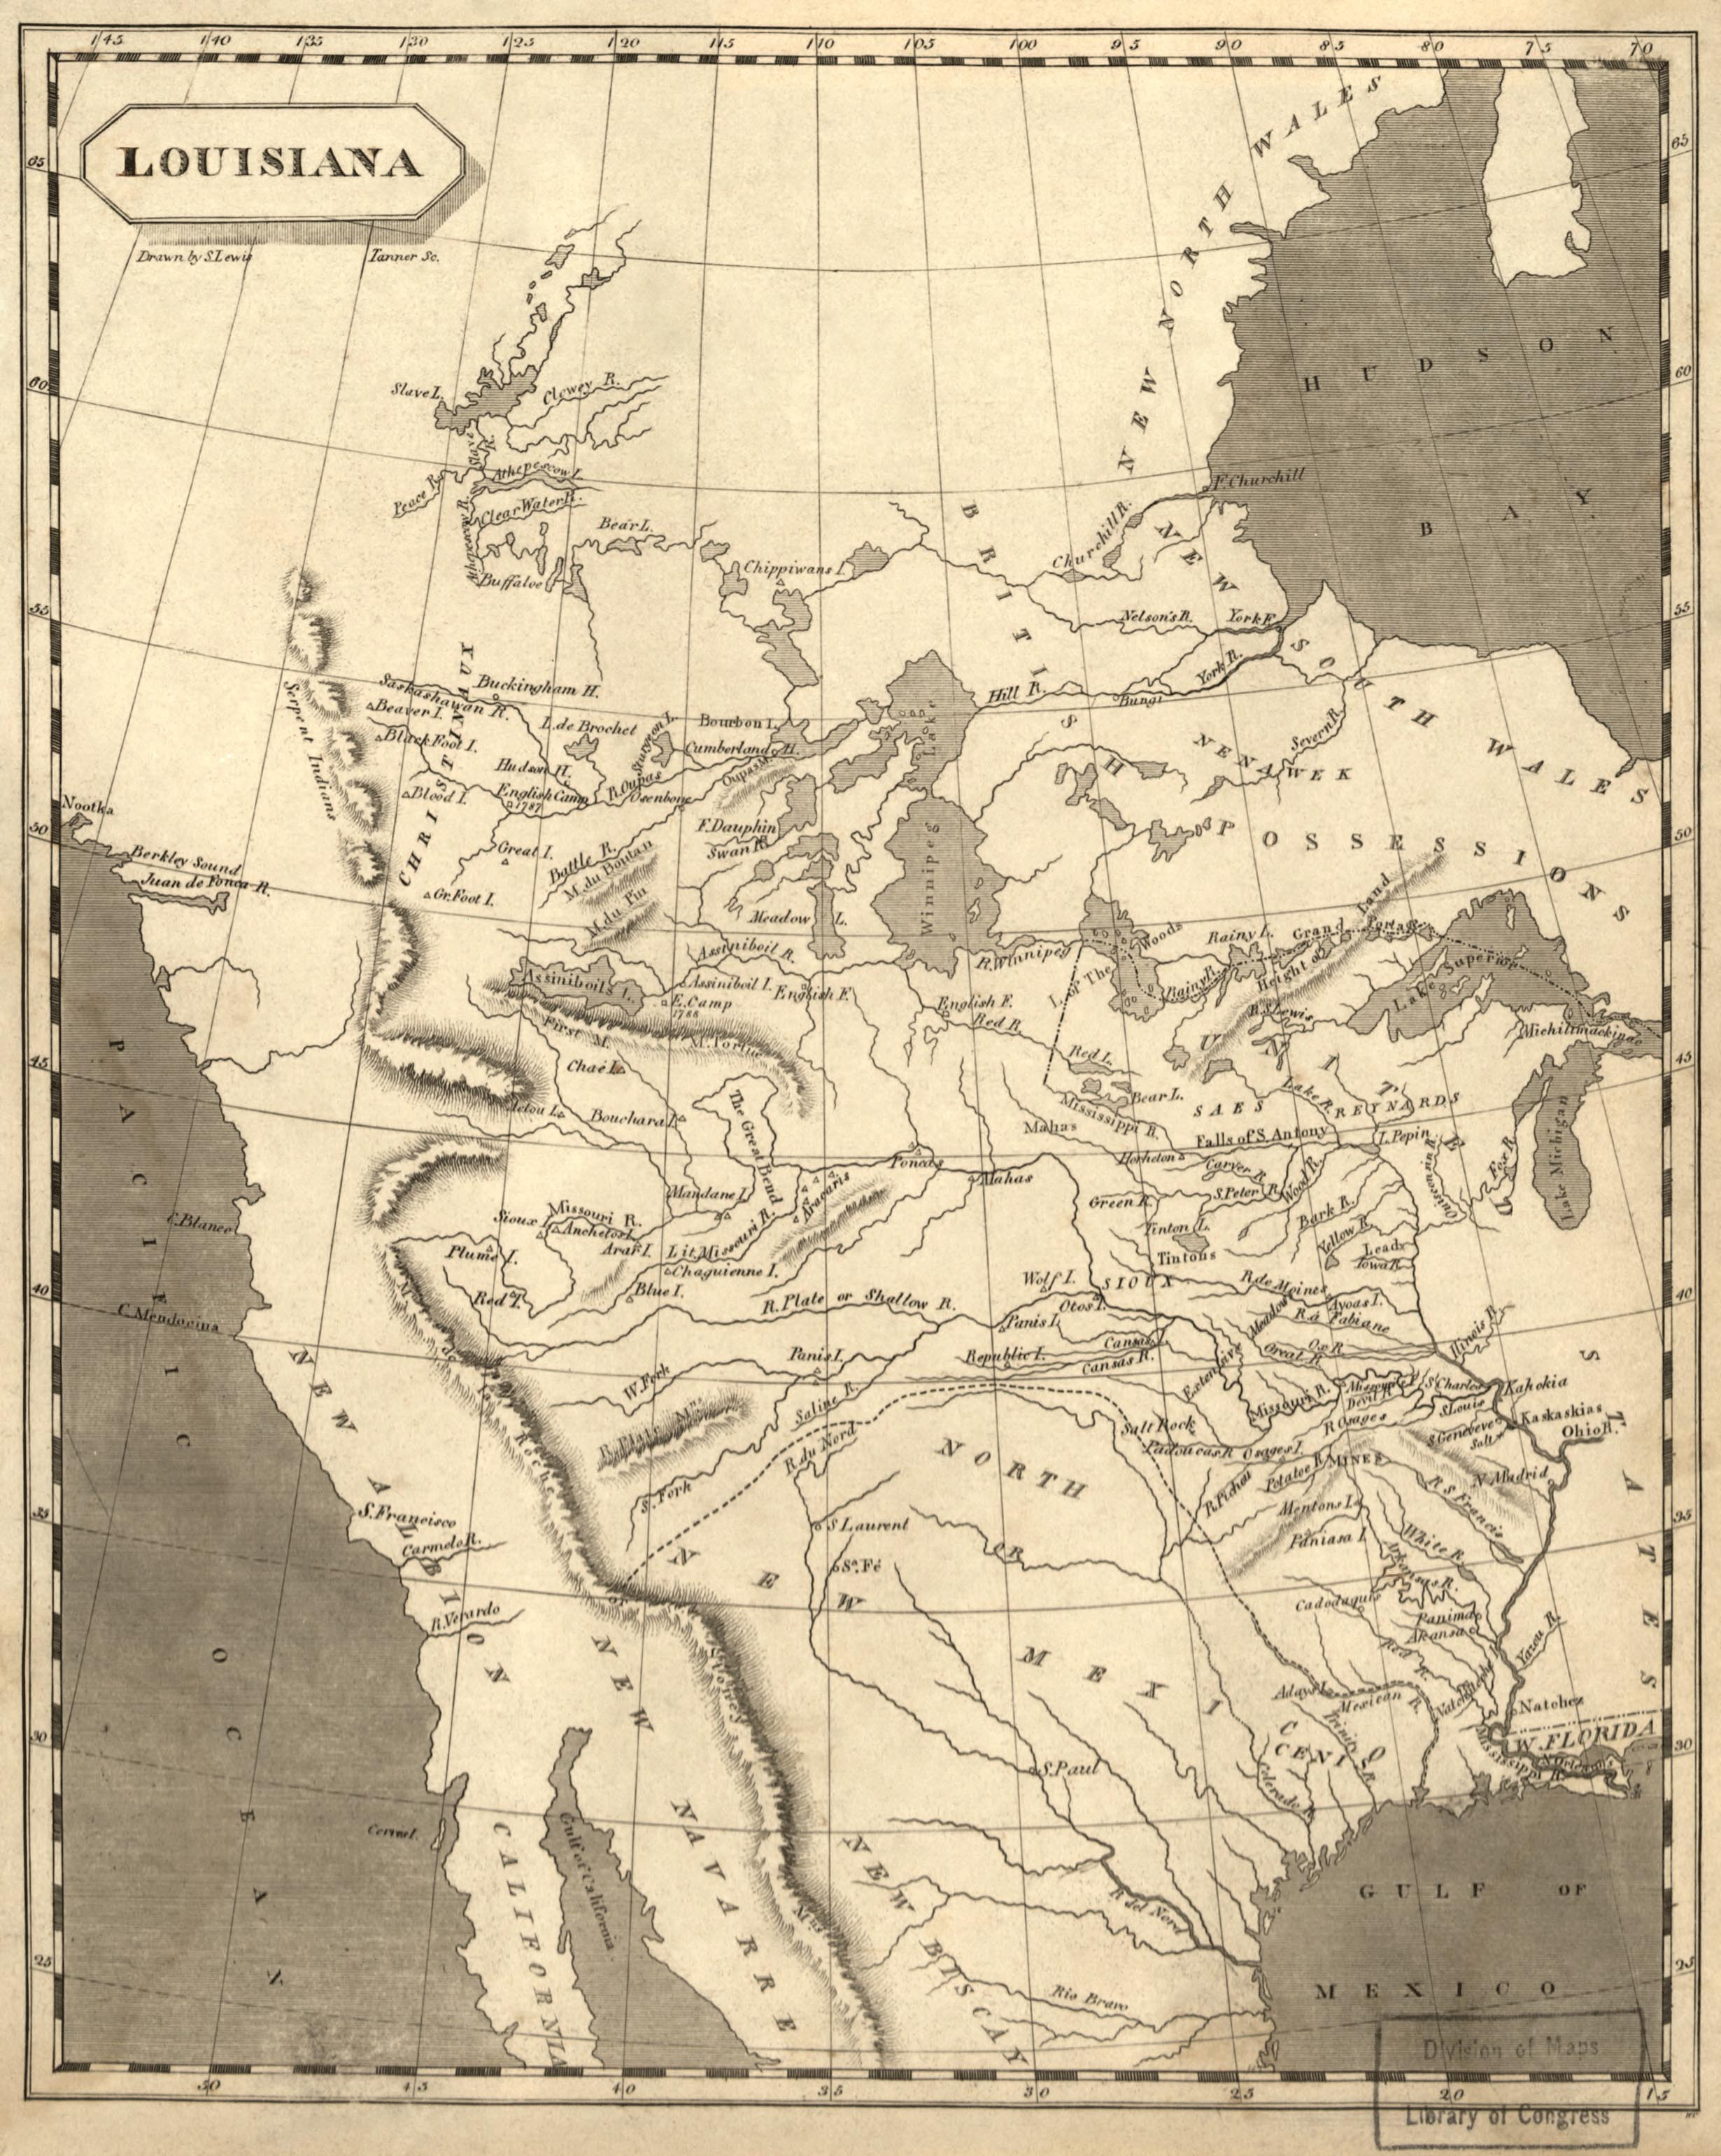 Map of Louisiana, 1804